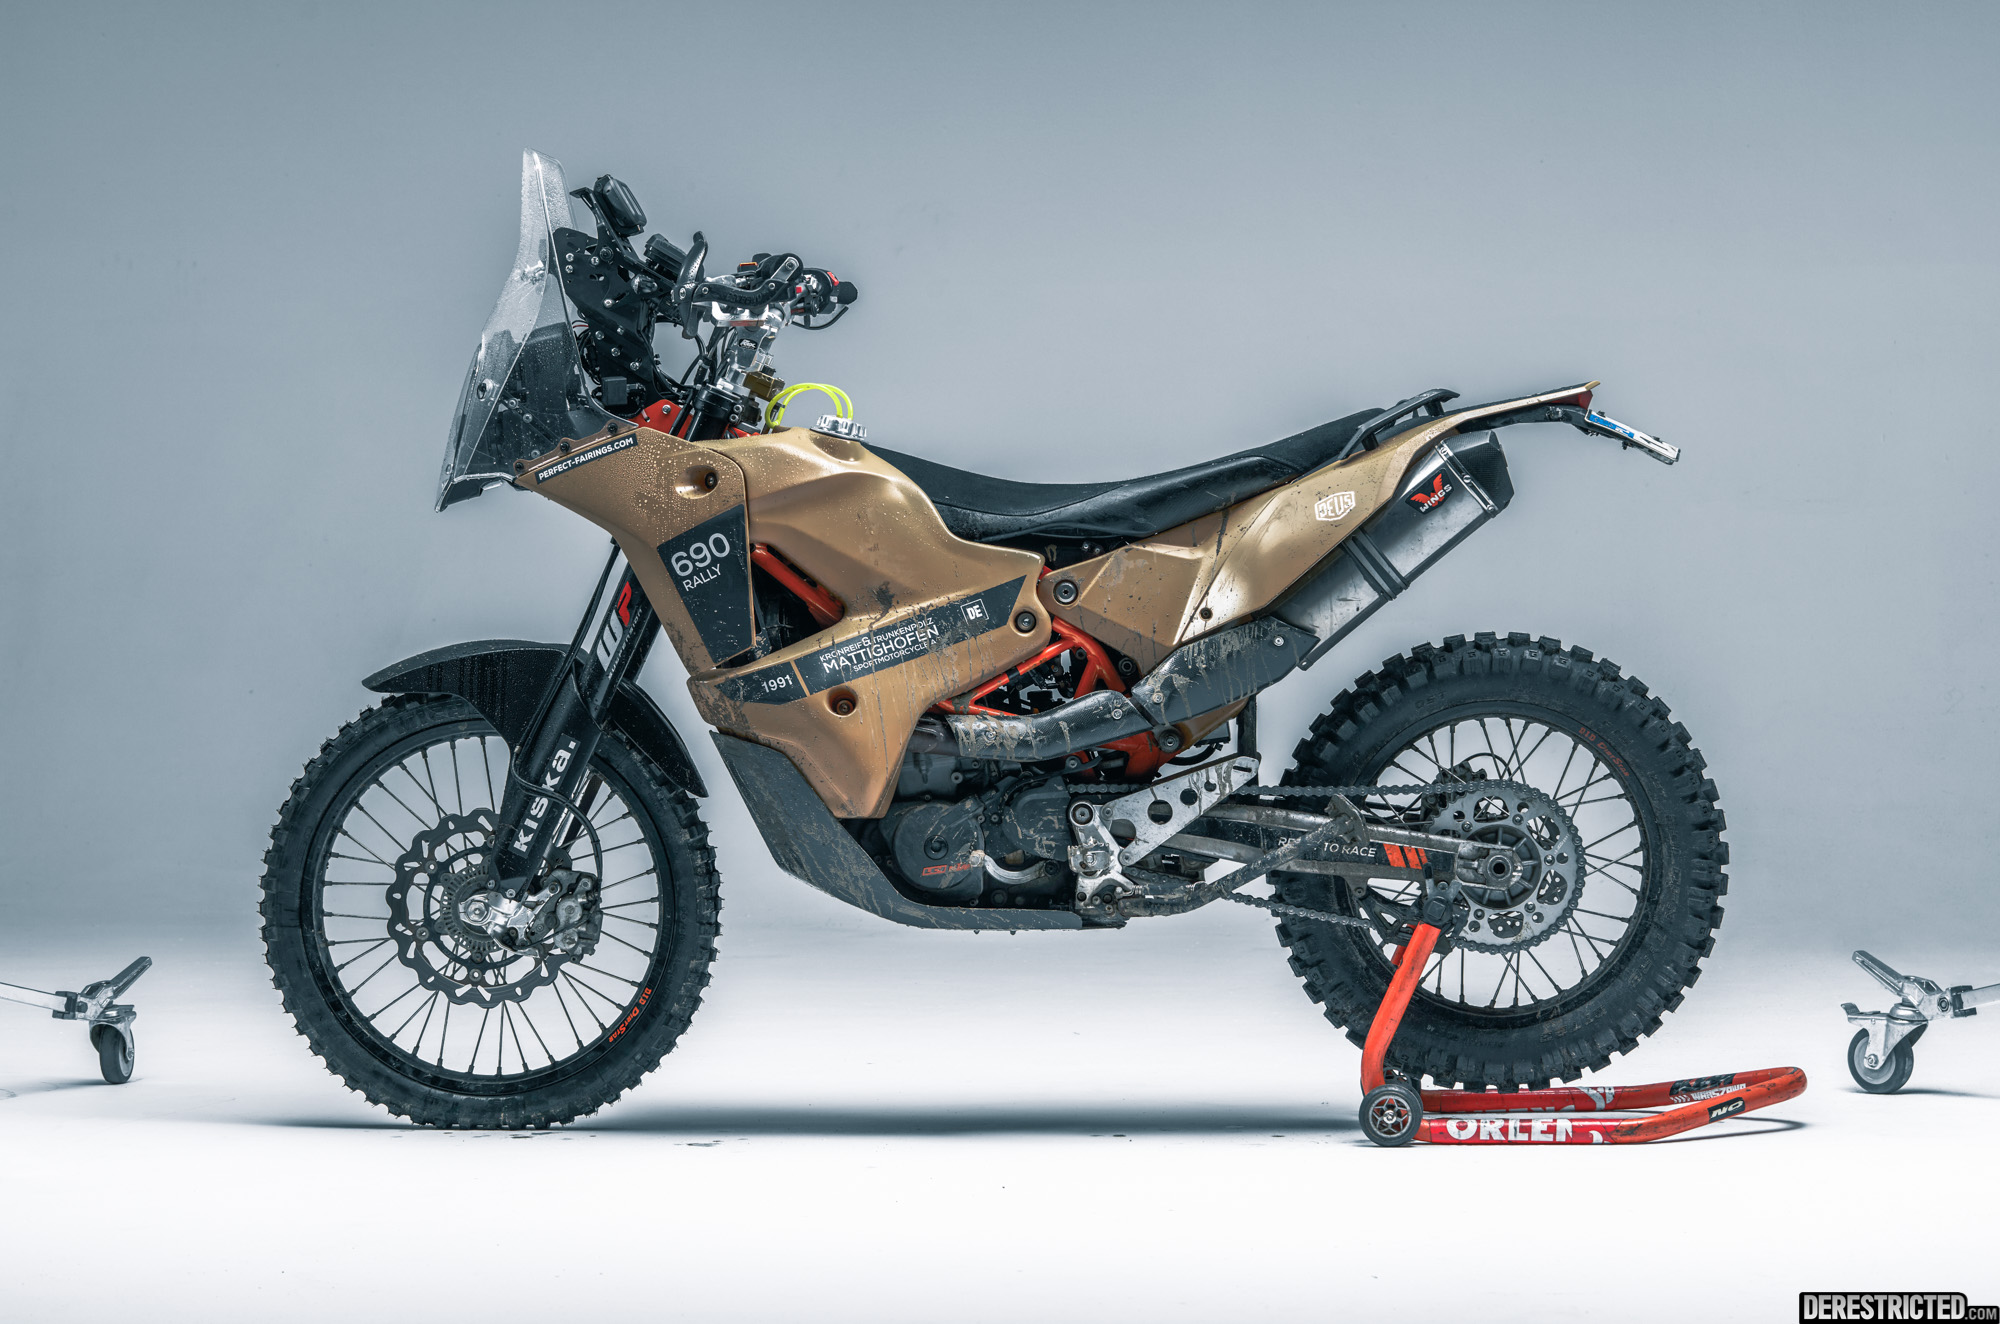 ktm 690 enduro rally custom from rafael gorski derestricted